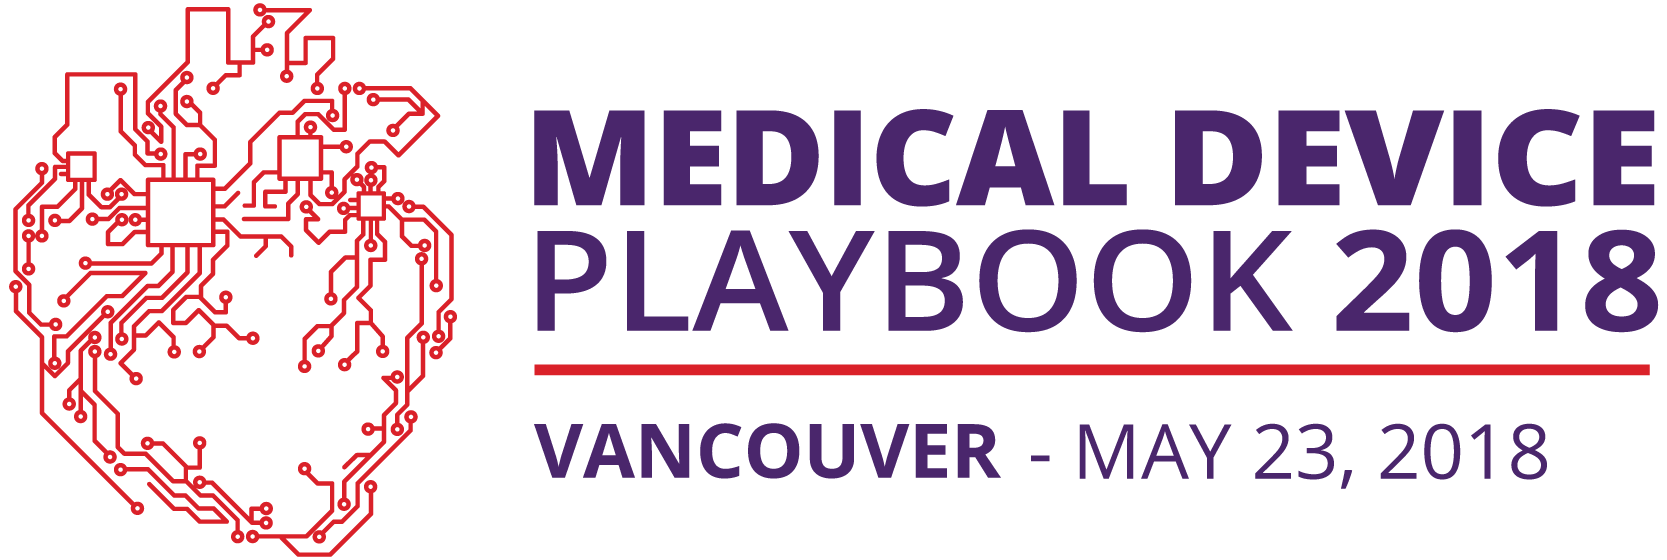 Medical Device Playbook Vancouver 2018